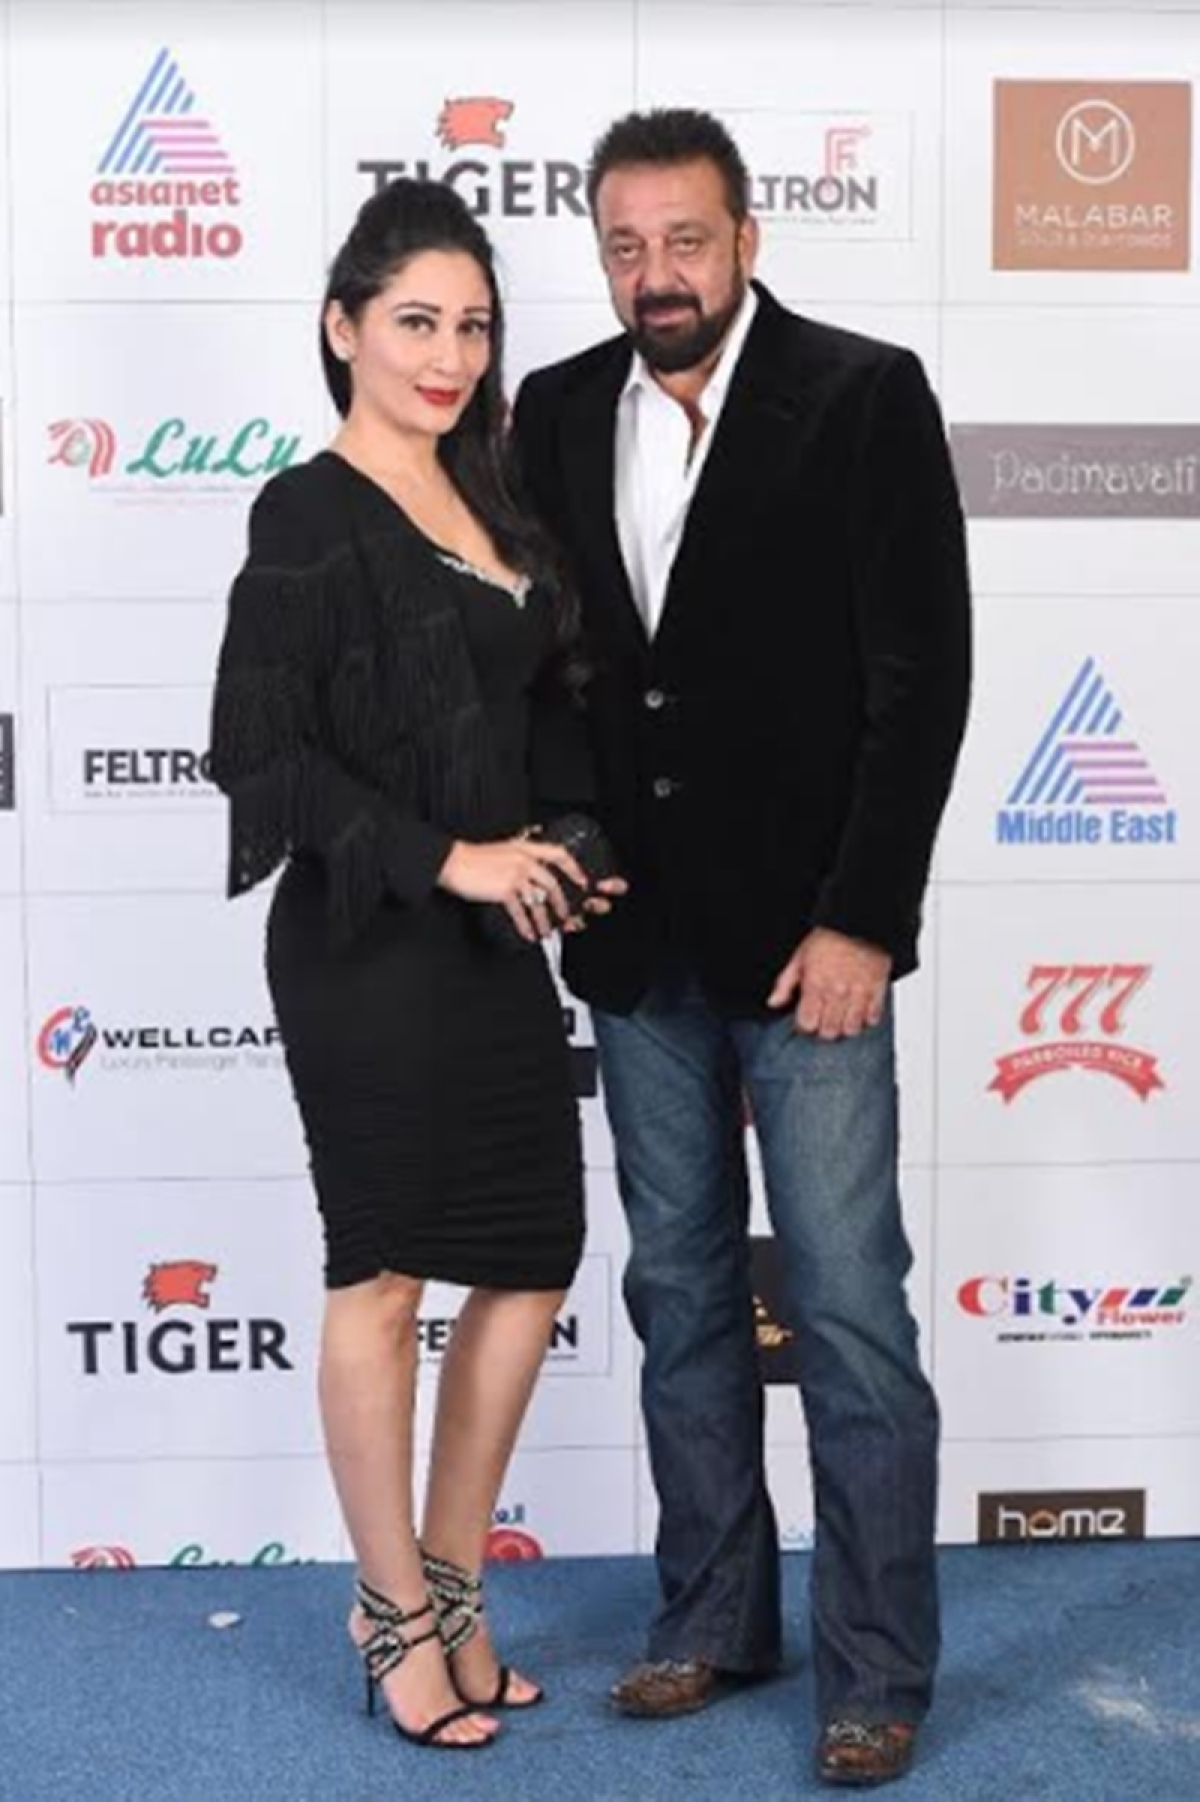 Sanjay Dutt bags most popular Indian star in the UAE!